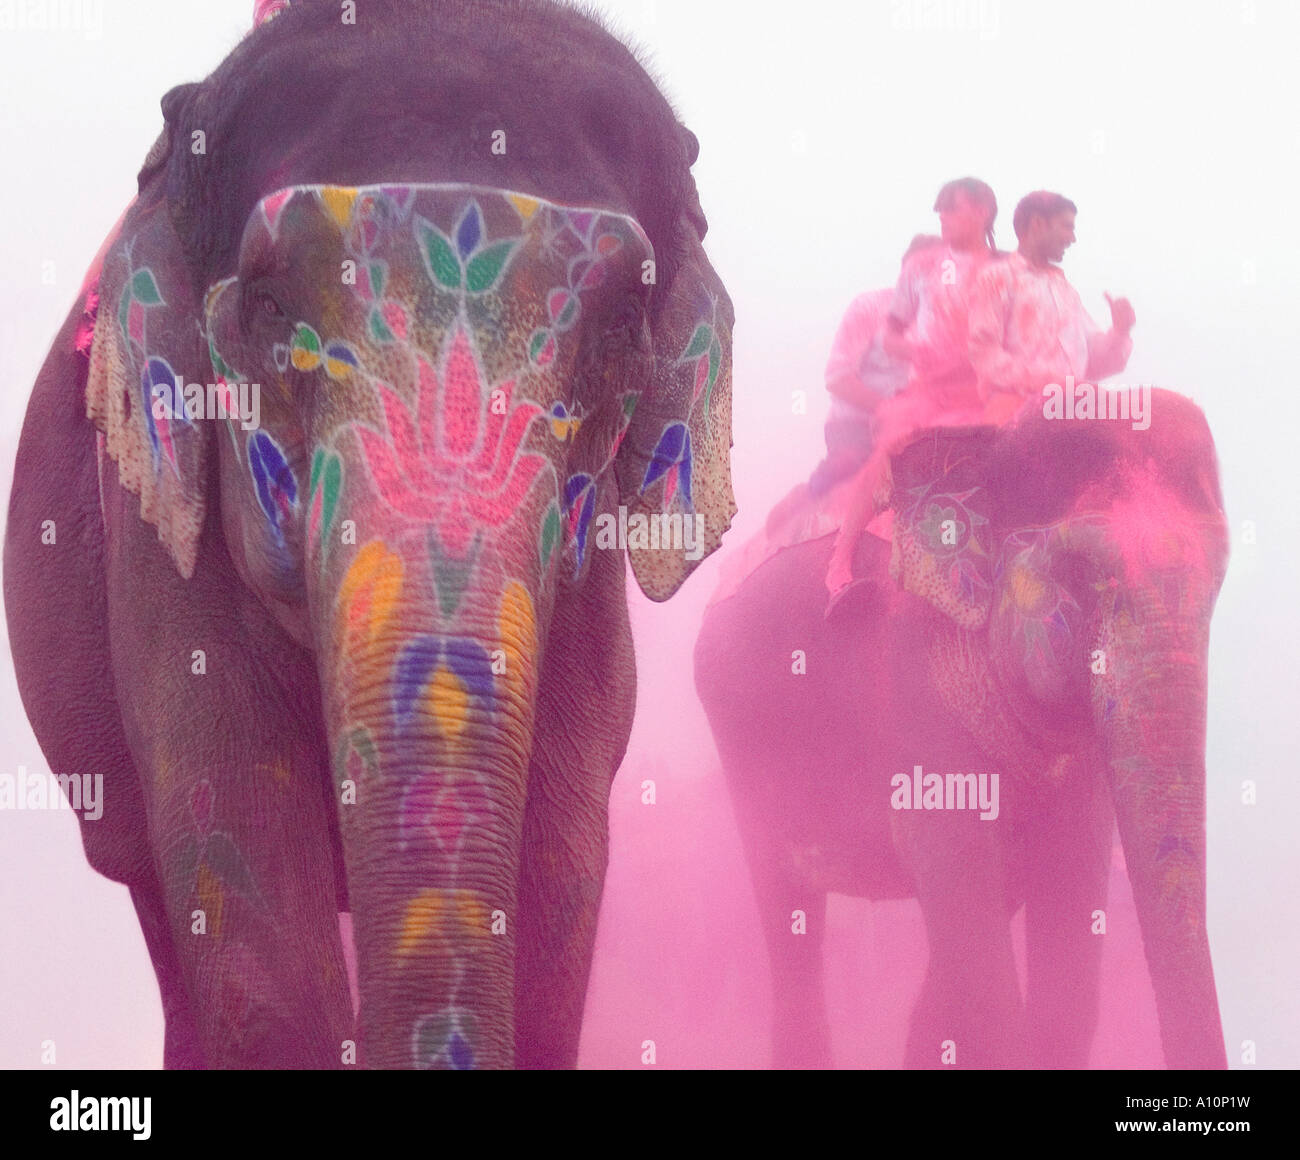 Three elephants at an elephant festival, Jaipur, Rajasthan, India - Stock Image